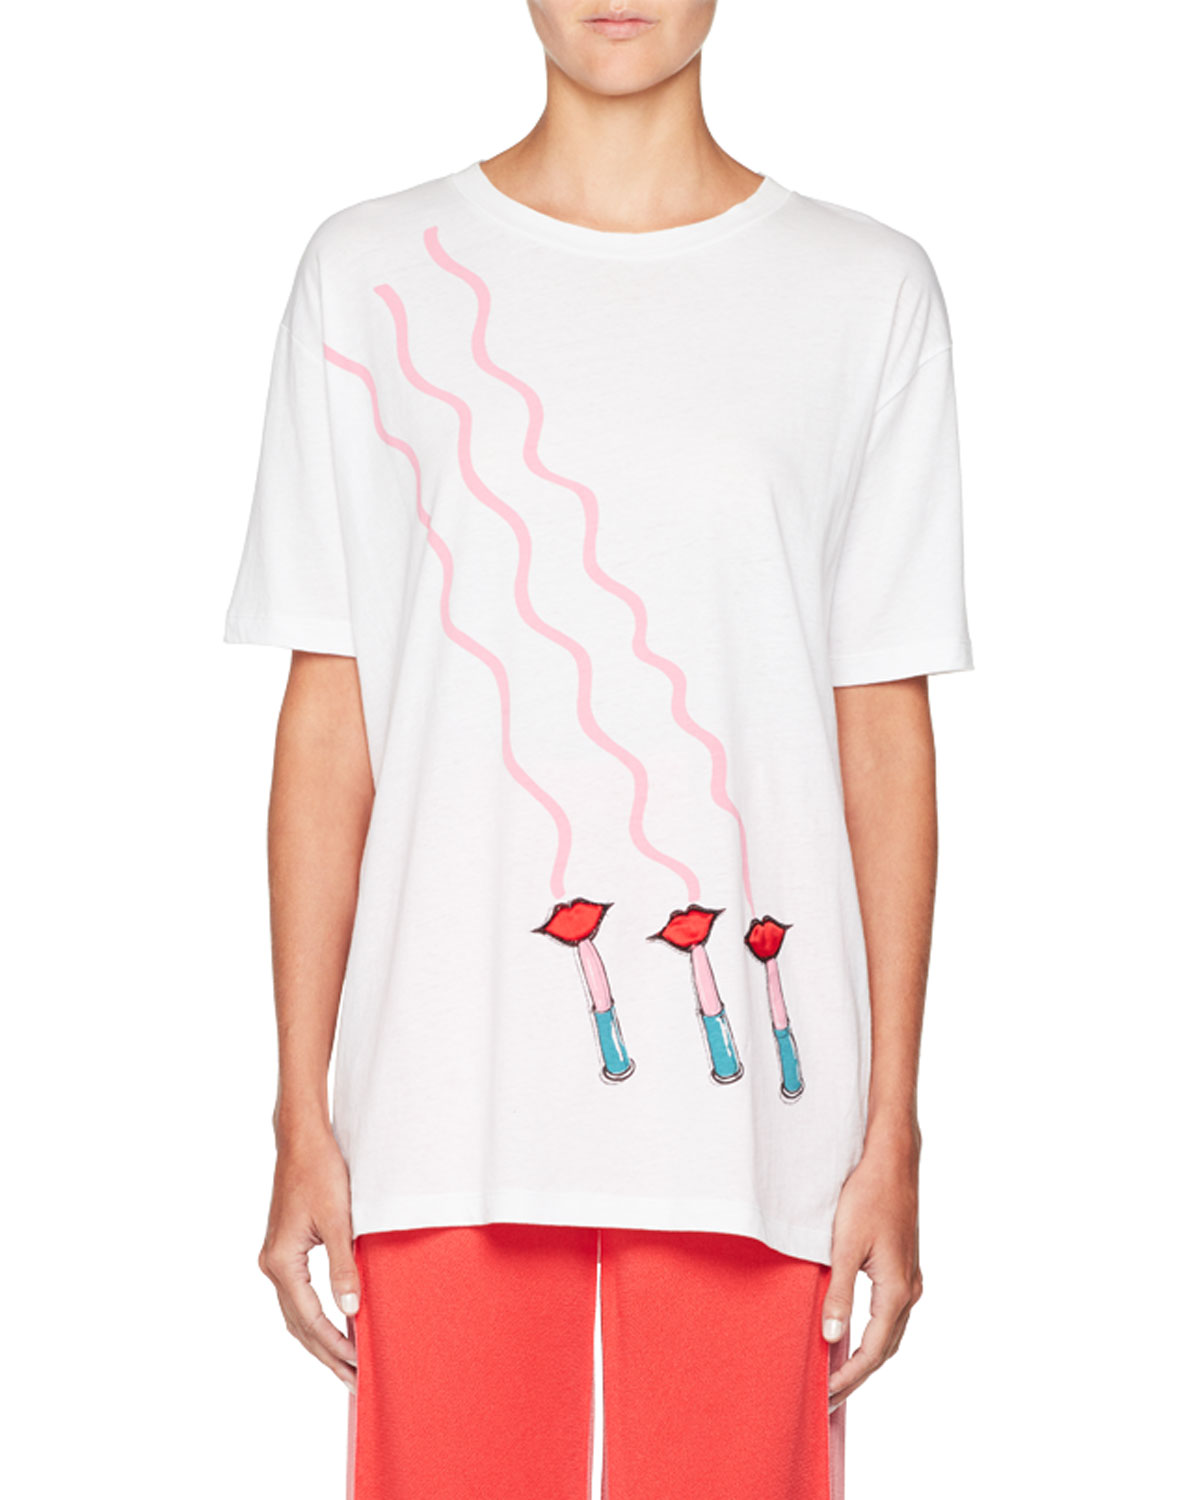 Lipstick-Print Crewneck Short-Sleeve Cotton T-Shirt